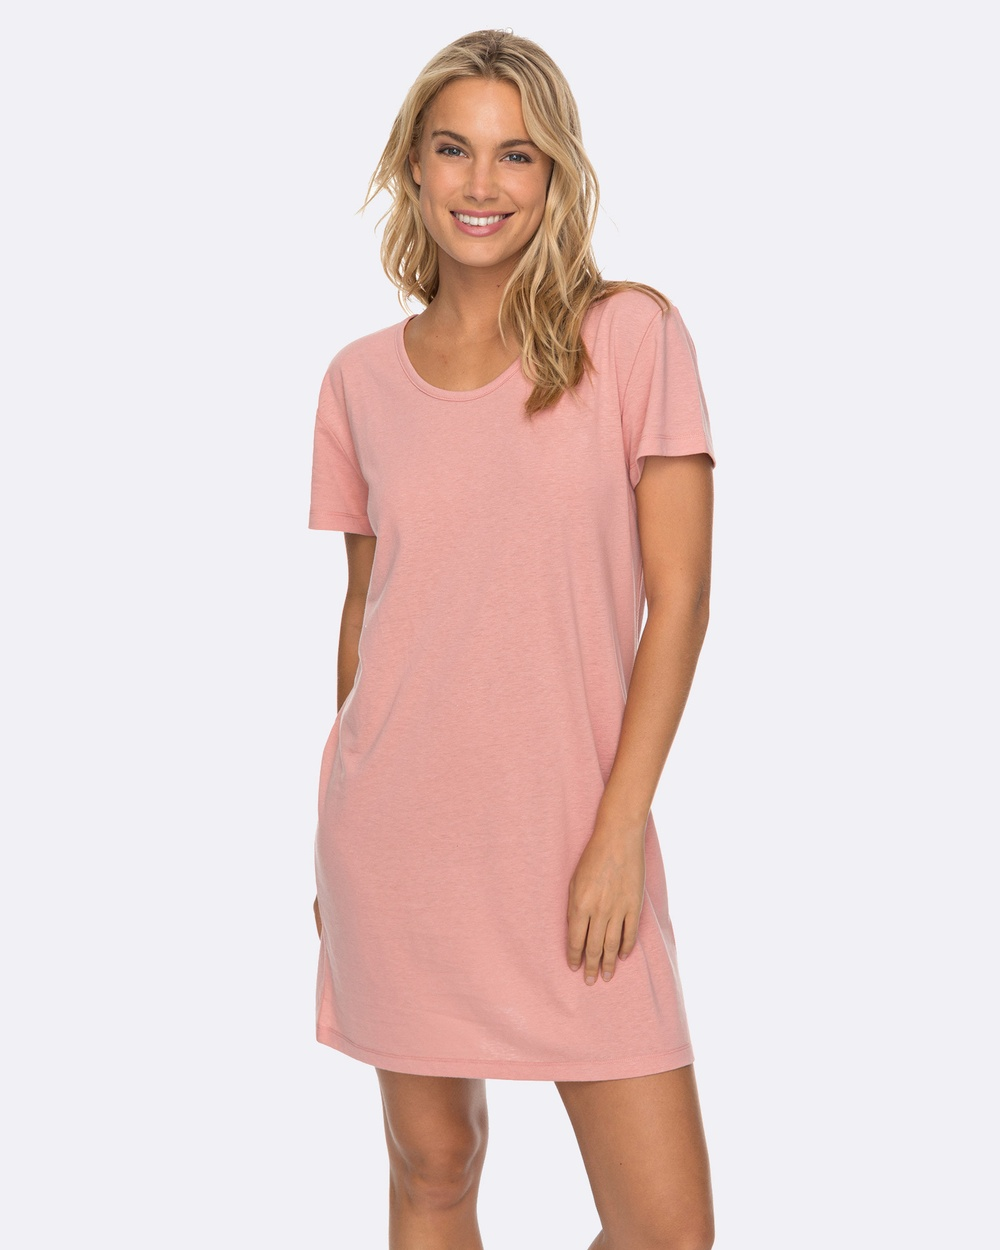 Roxy Womens Just Simple Solid T Shirt Dress Swimwear ROSE TAN Womens Just Simple Solid T Shirt Dress